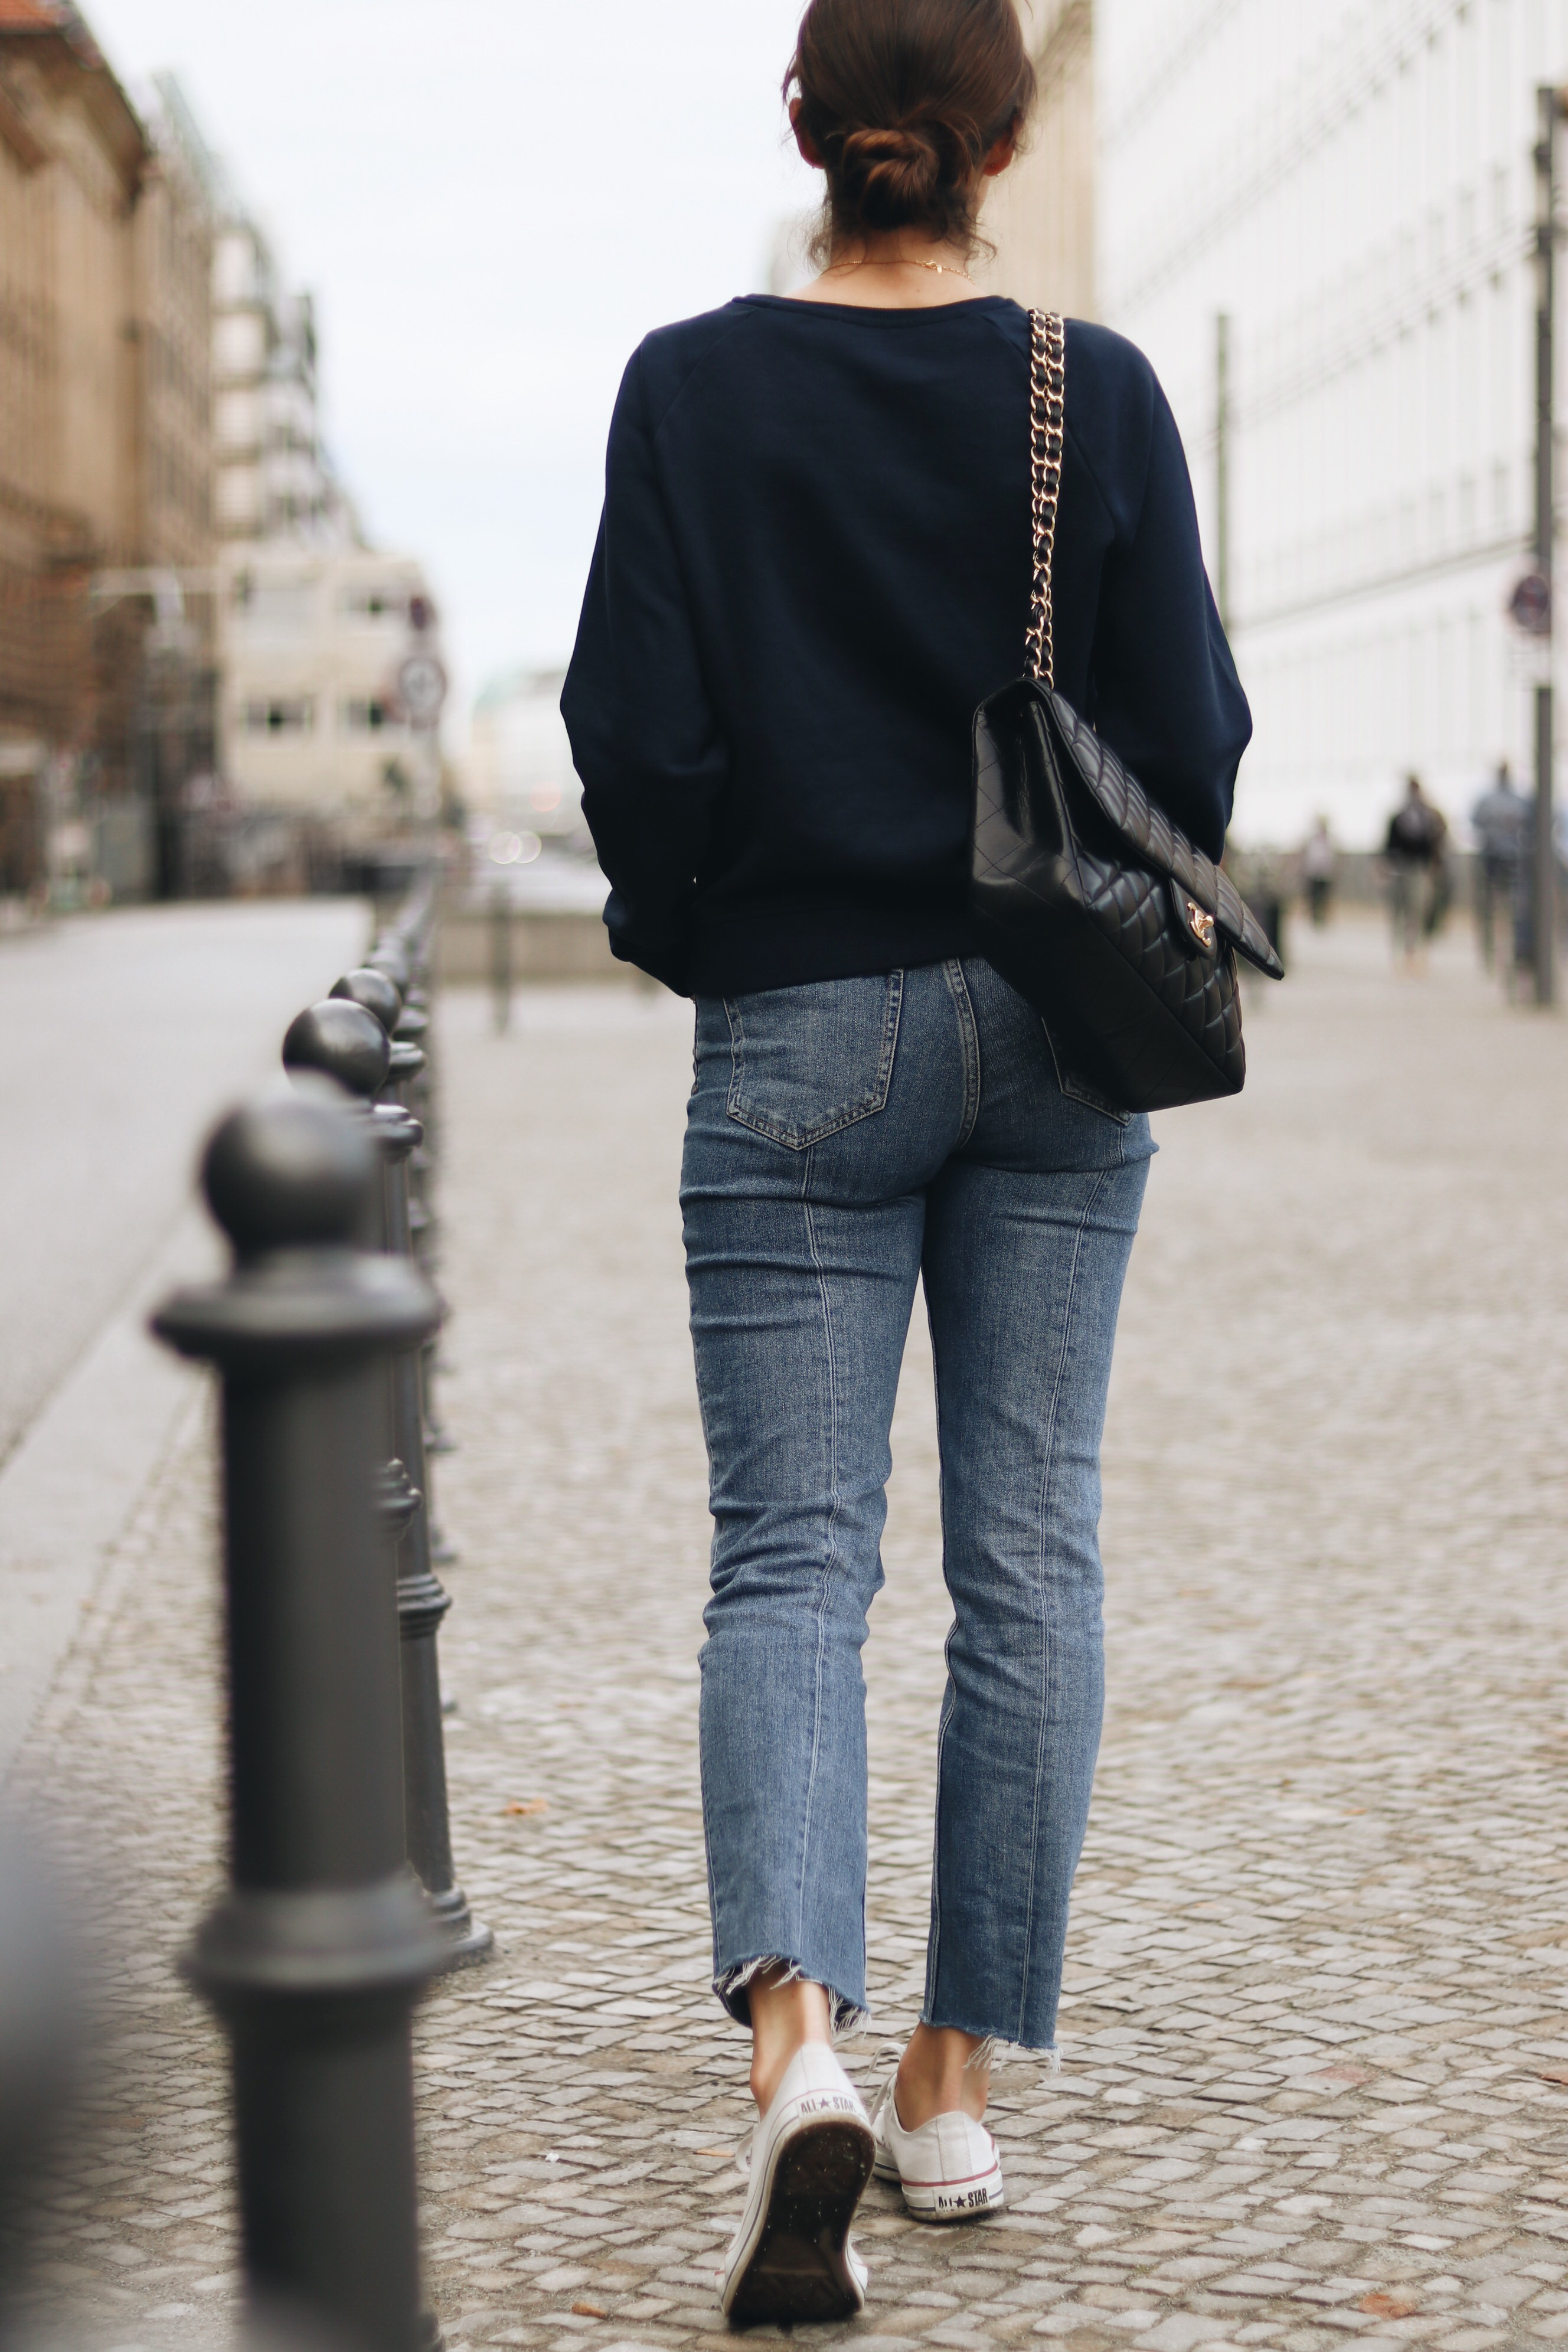 modeblogger outfit kombinieren streetstyle